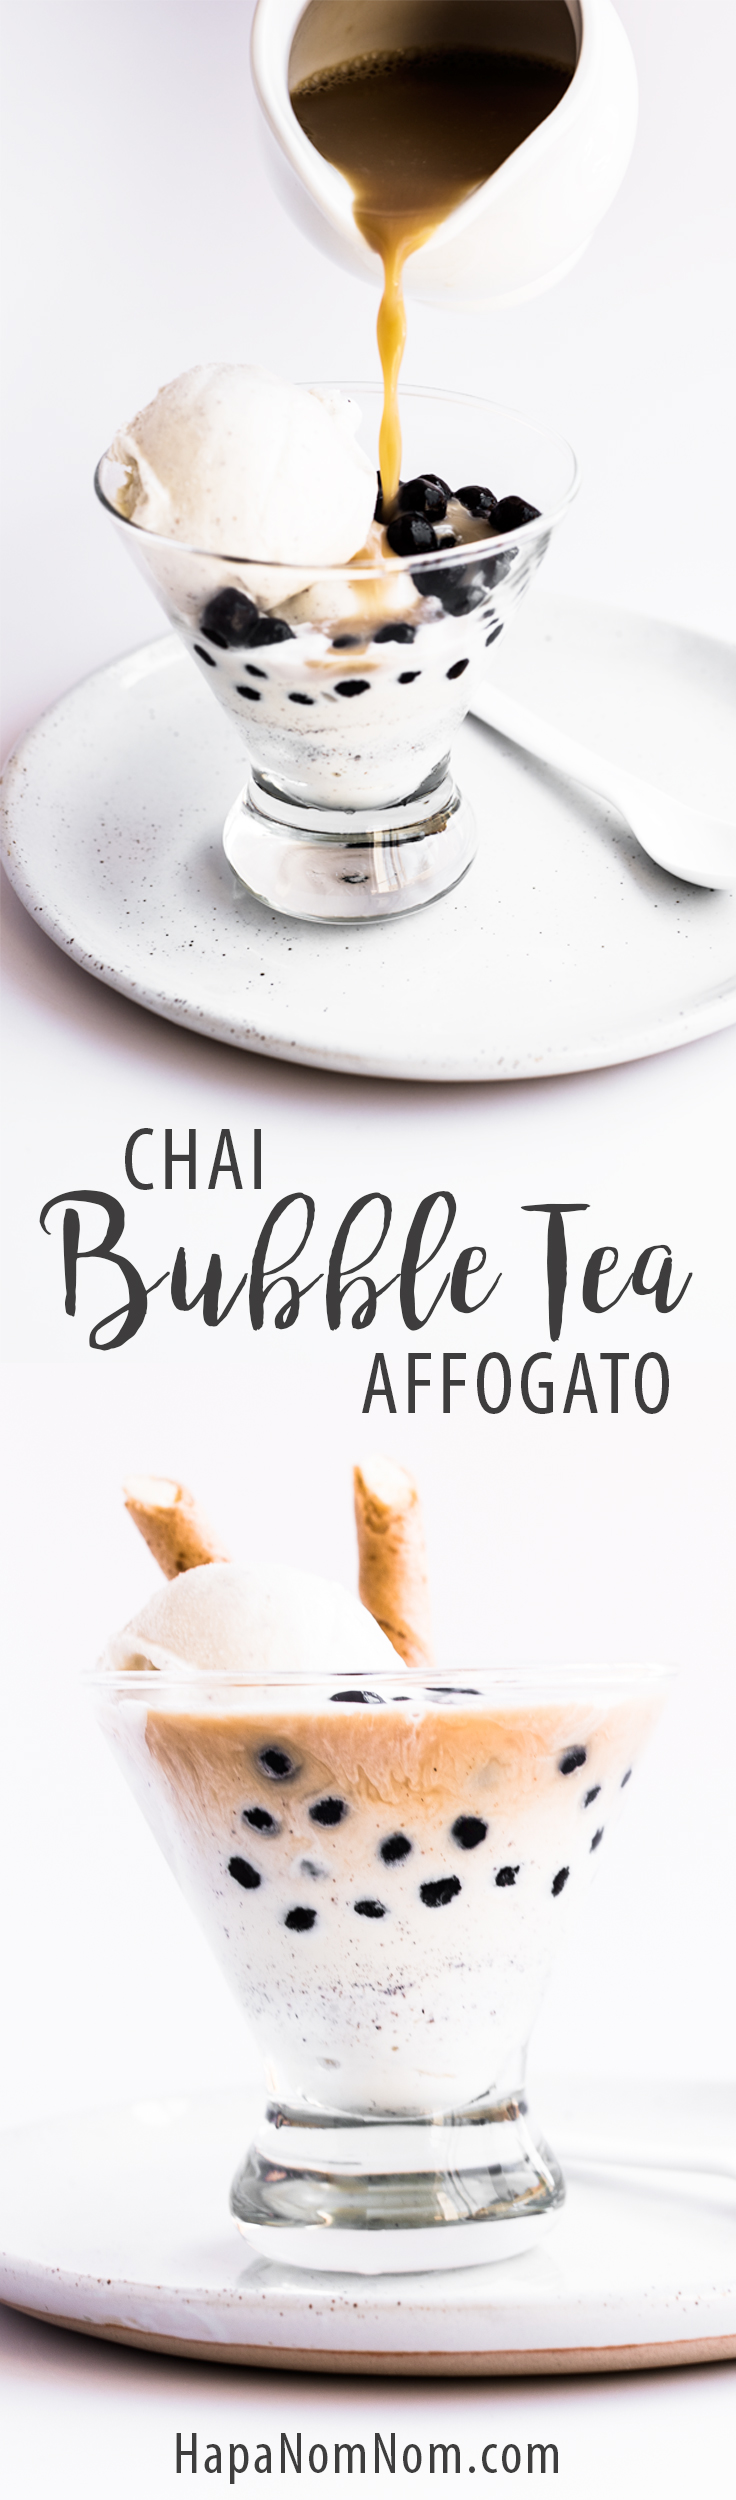 Quick, easy Chai Bubble Tea Affogato - the perfect treat!